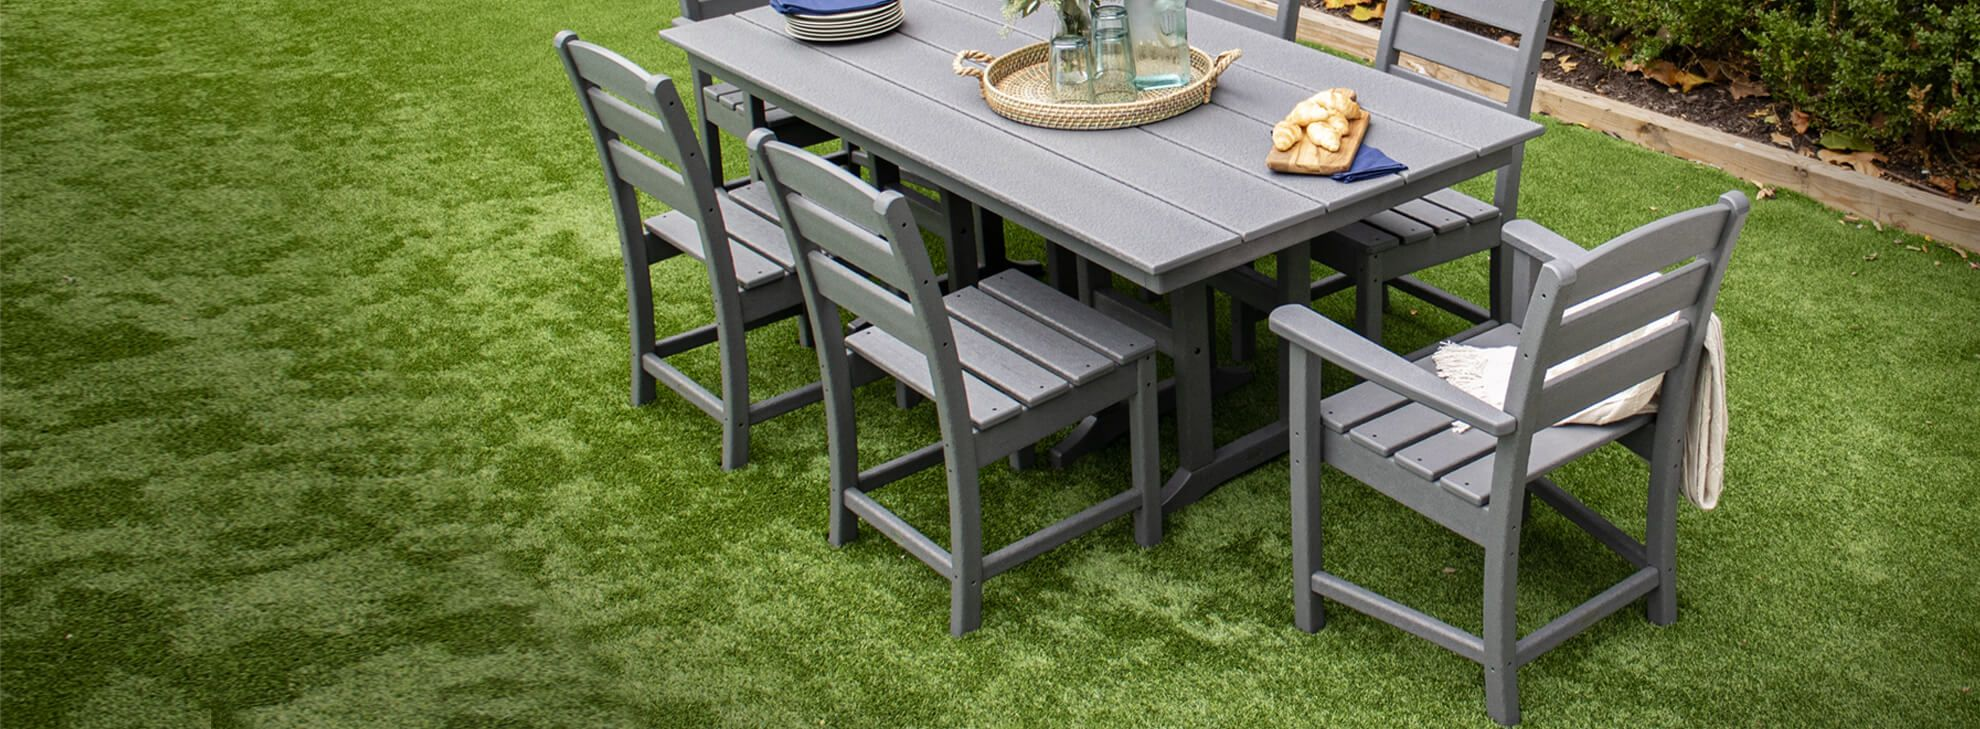 Browse Quick Ship Outdoor Furniture From Polywood And Get Your Items Fast Shop Our Quick Ship Co In 2021 Outdoor Furniture Farmhouse Dining Set Outdoor Furniture Sets